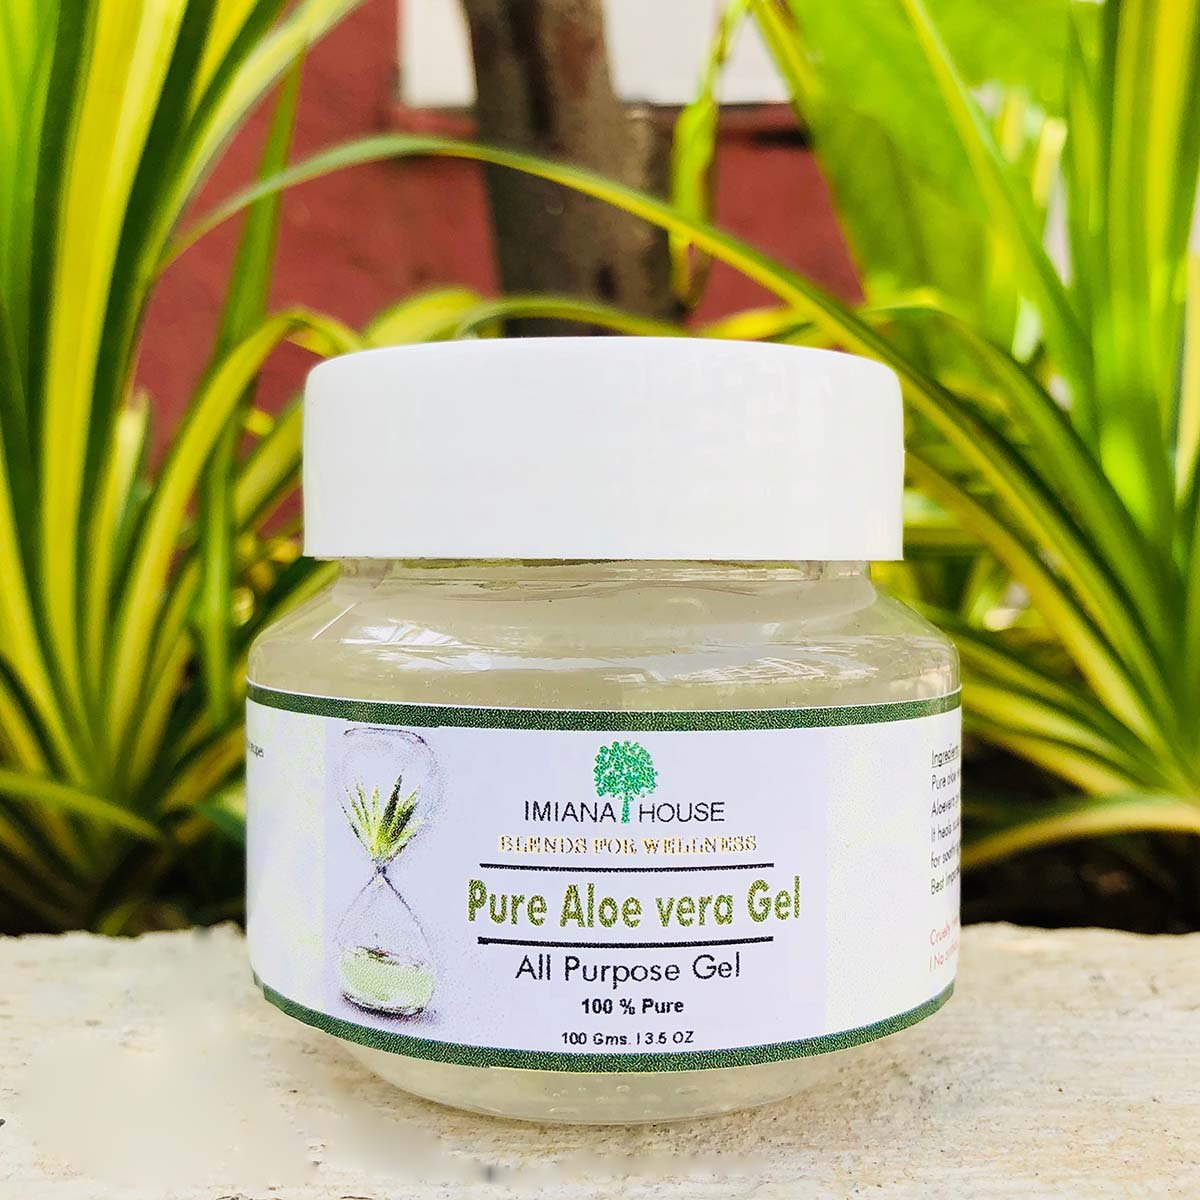 Pure Aloe Vera Gel (100% Pure) (All Purpose Gel)